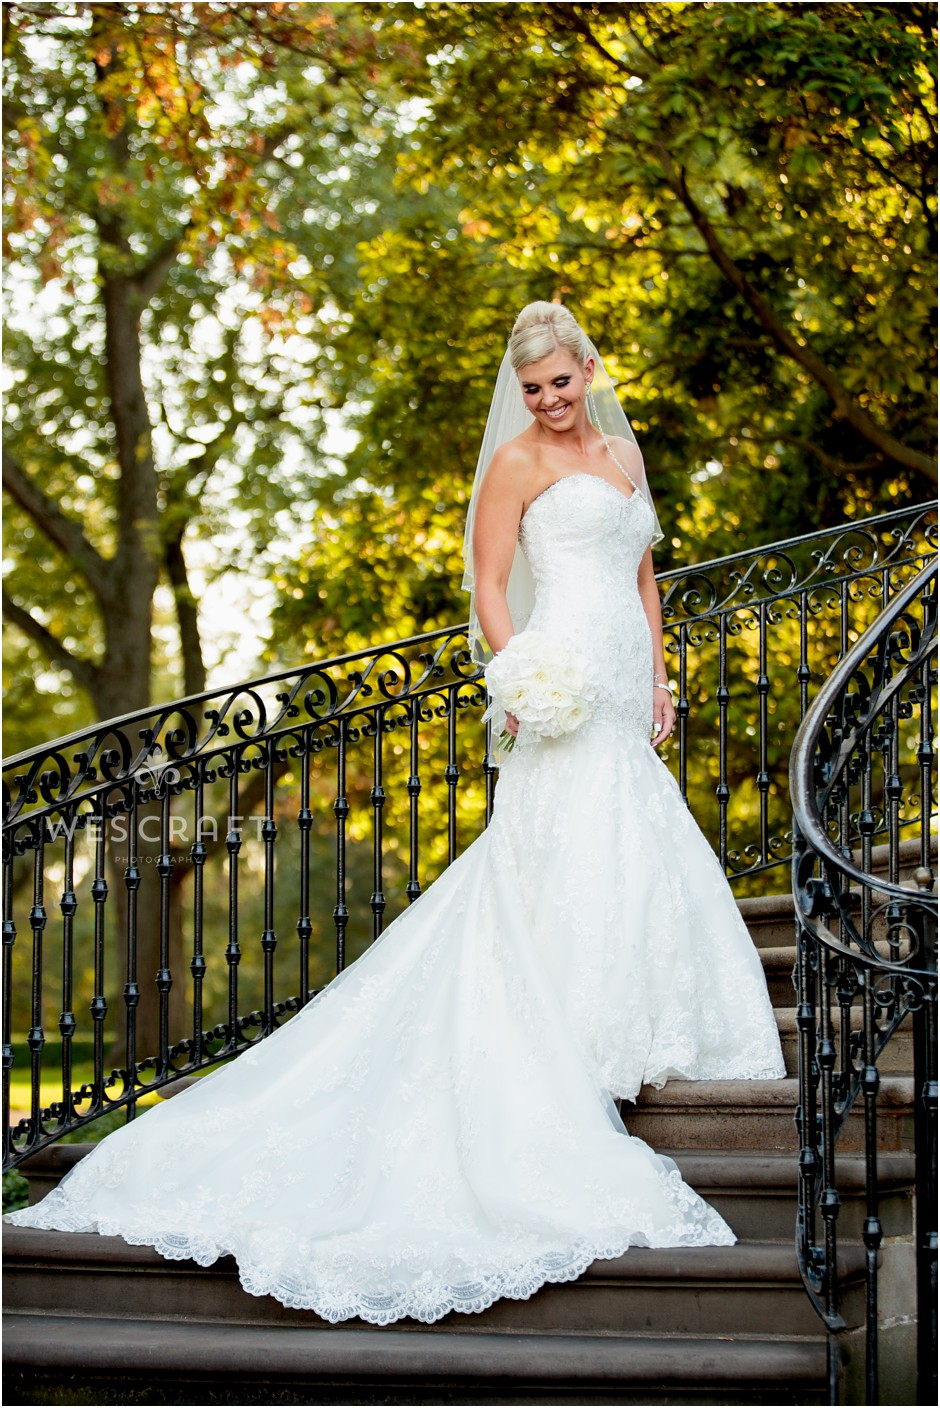 Summer Red Oak Cantigny Wedding Wes Craft Photography022